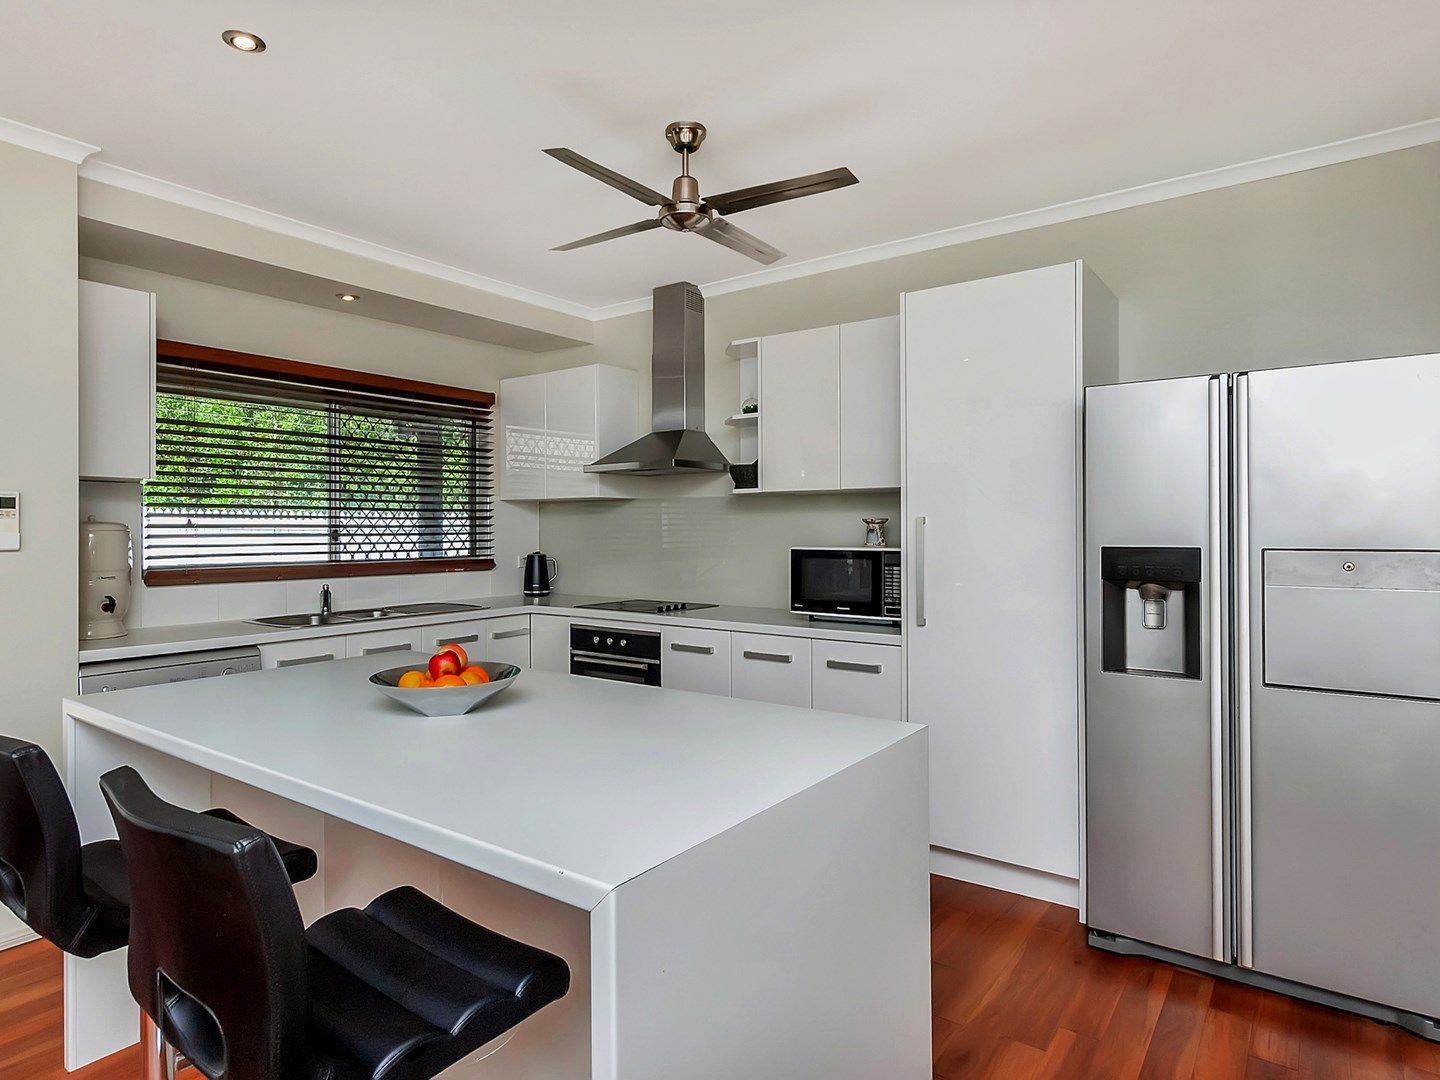 19A Boden St, Edge Hill QLD 4870, Image 1